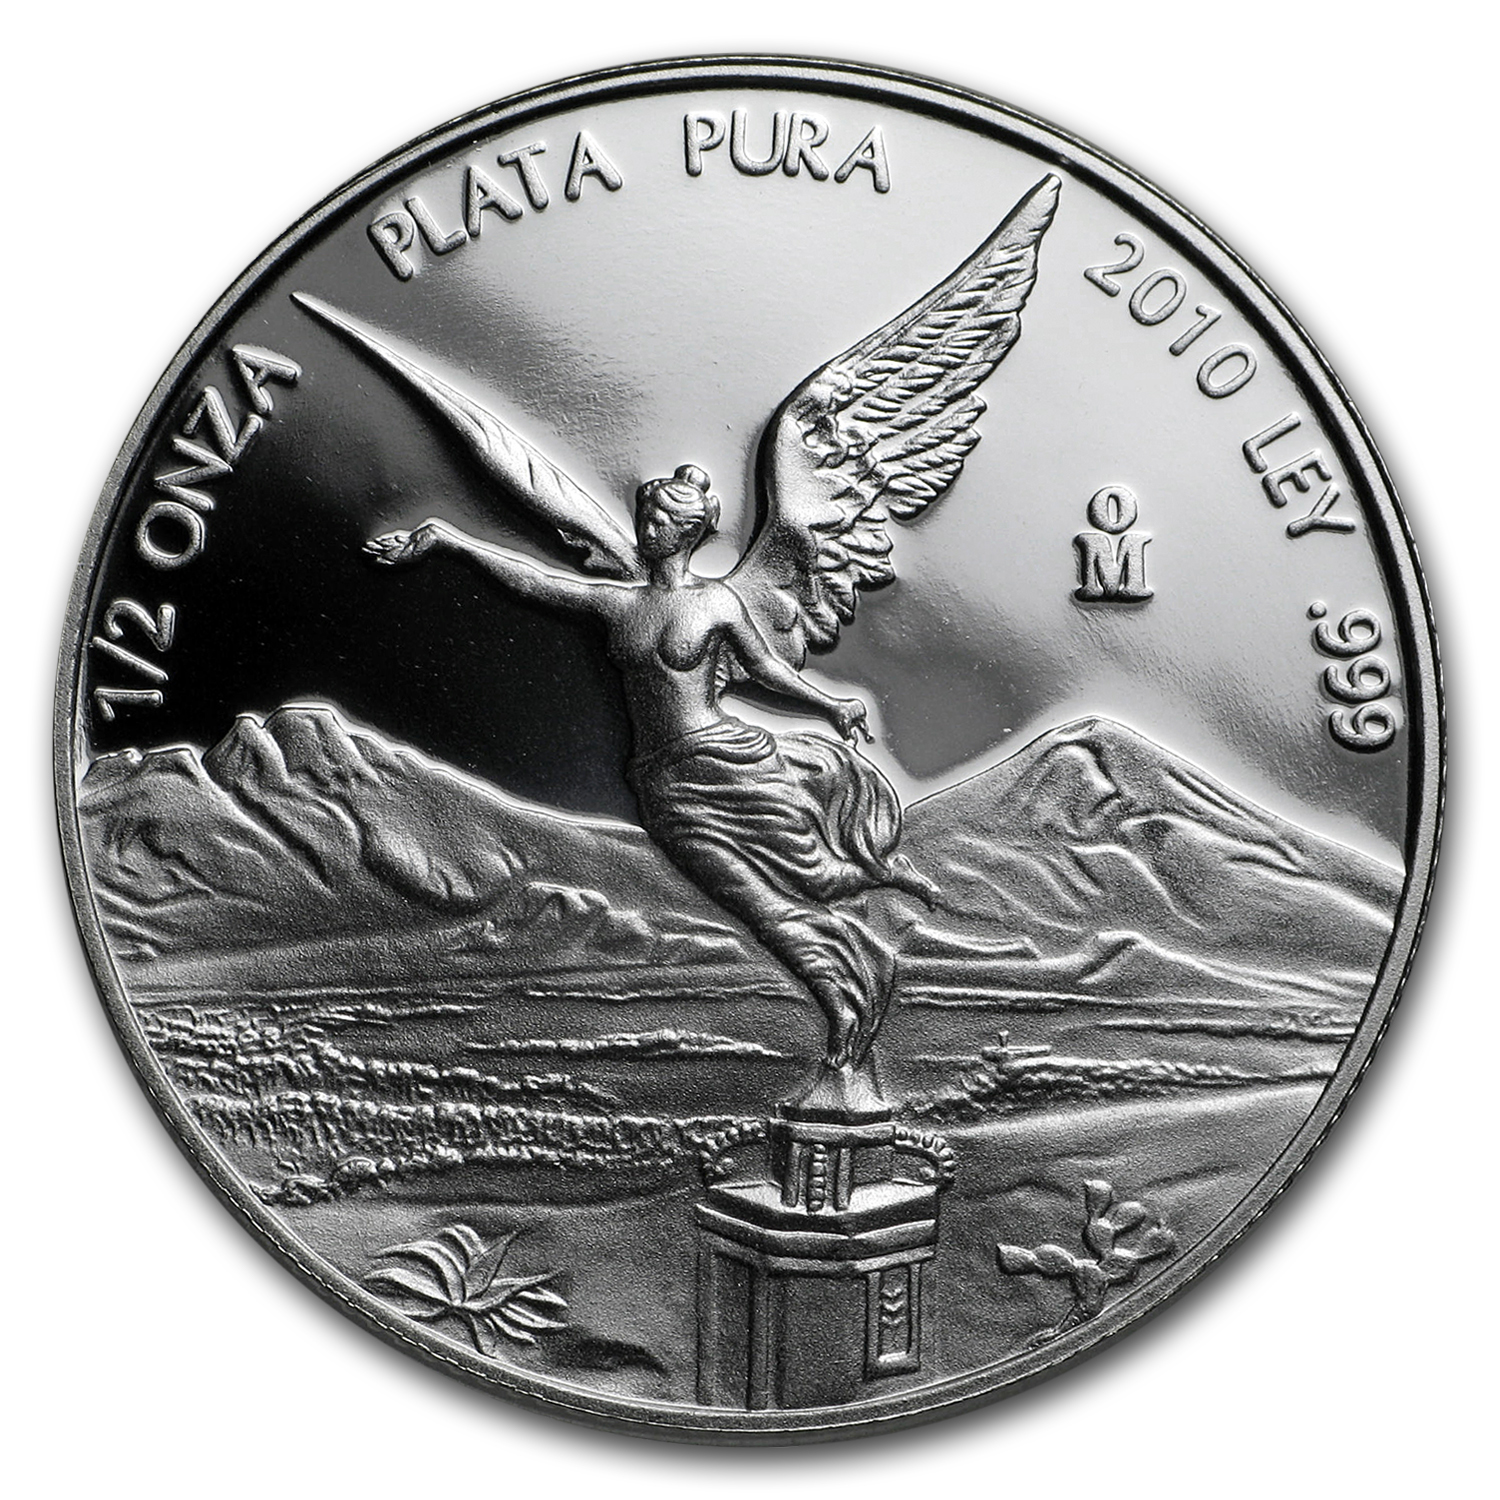 2010 Mexico 1/2 oz Silver Libertad Proof (In Capsule)